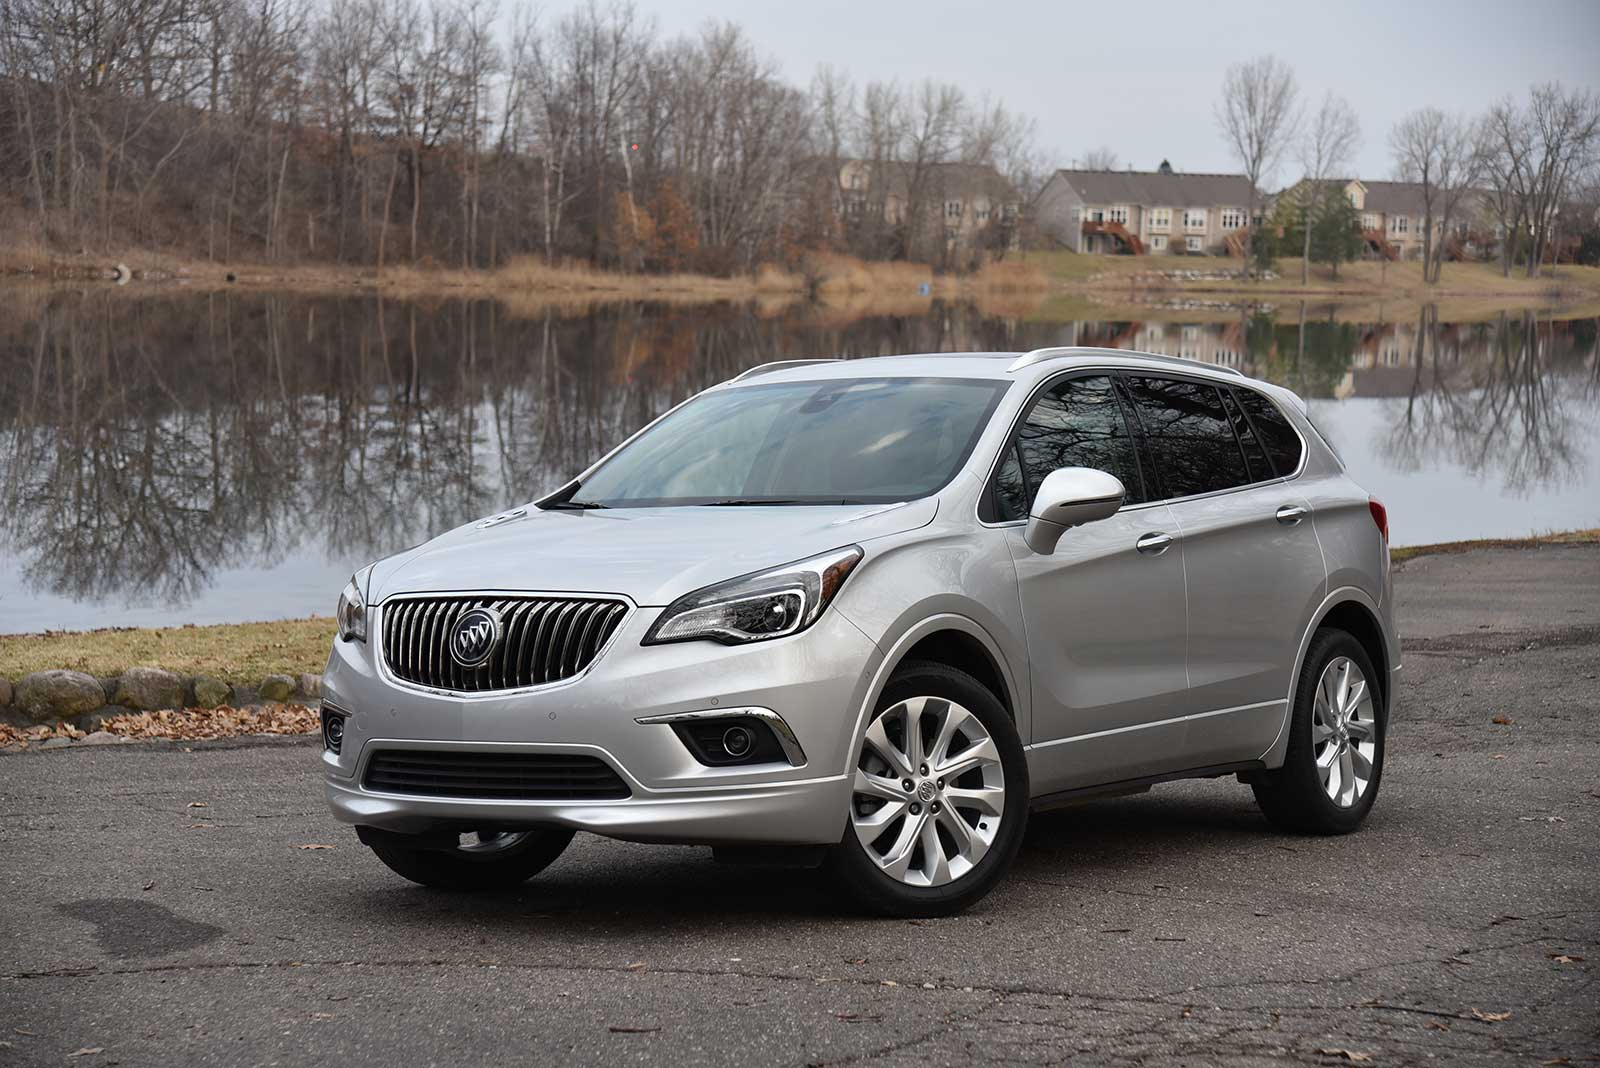 2017 buick envision review curbed with craig cole news. Black Bedroom Furniture Sets. Home Design Ideas